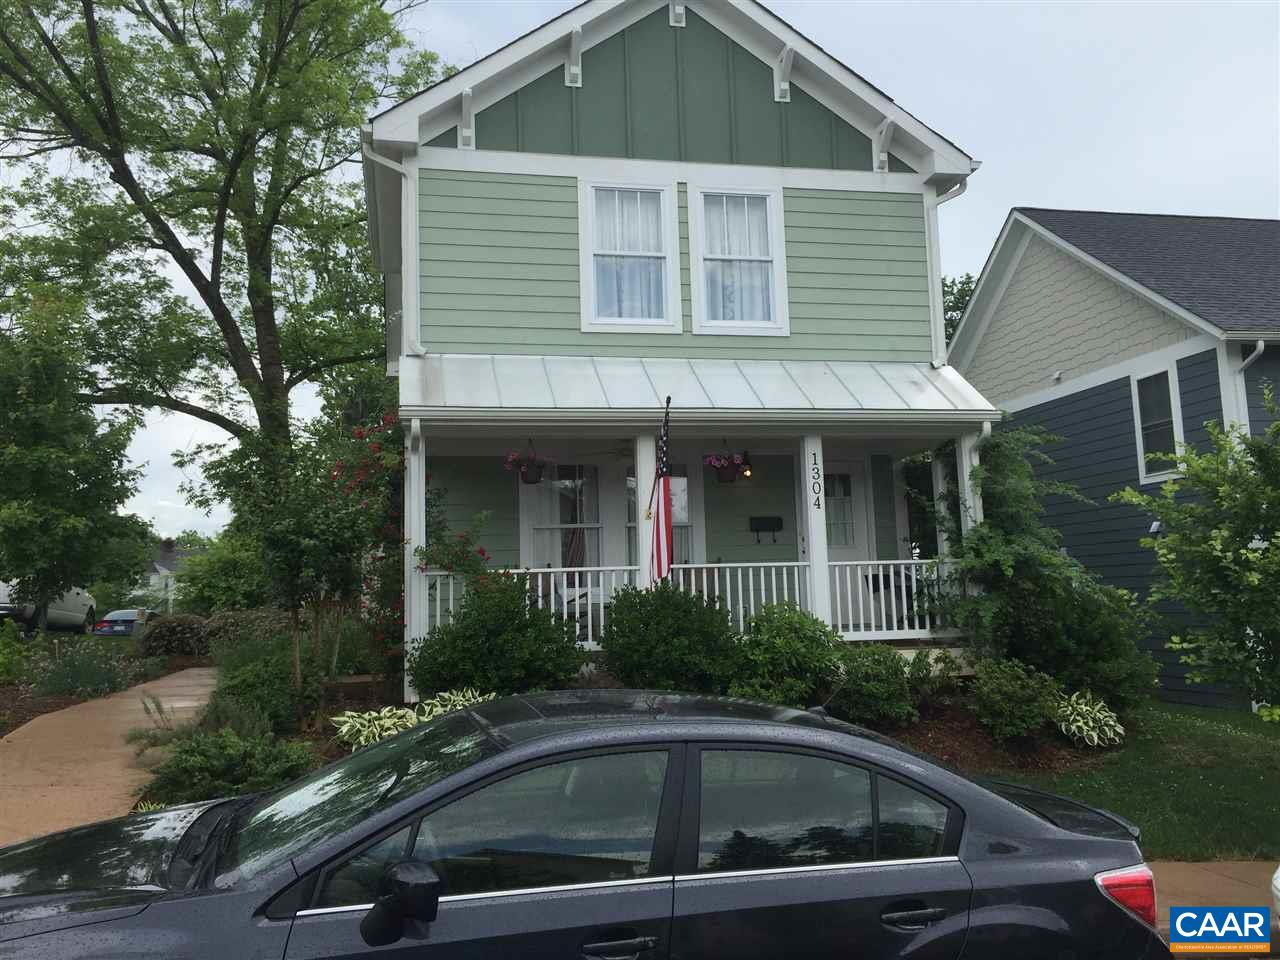 Photo of home at 1304 nunley st, charlottesville,